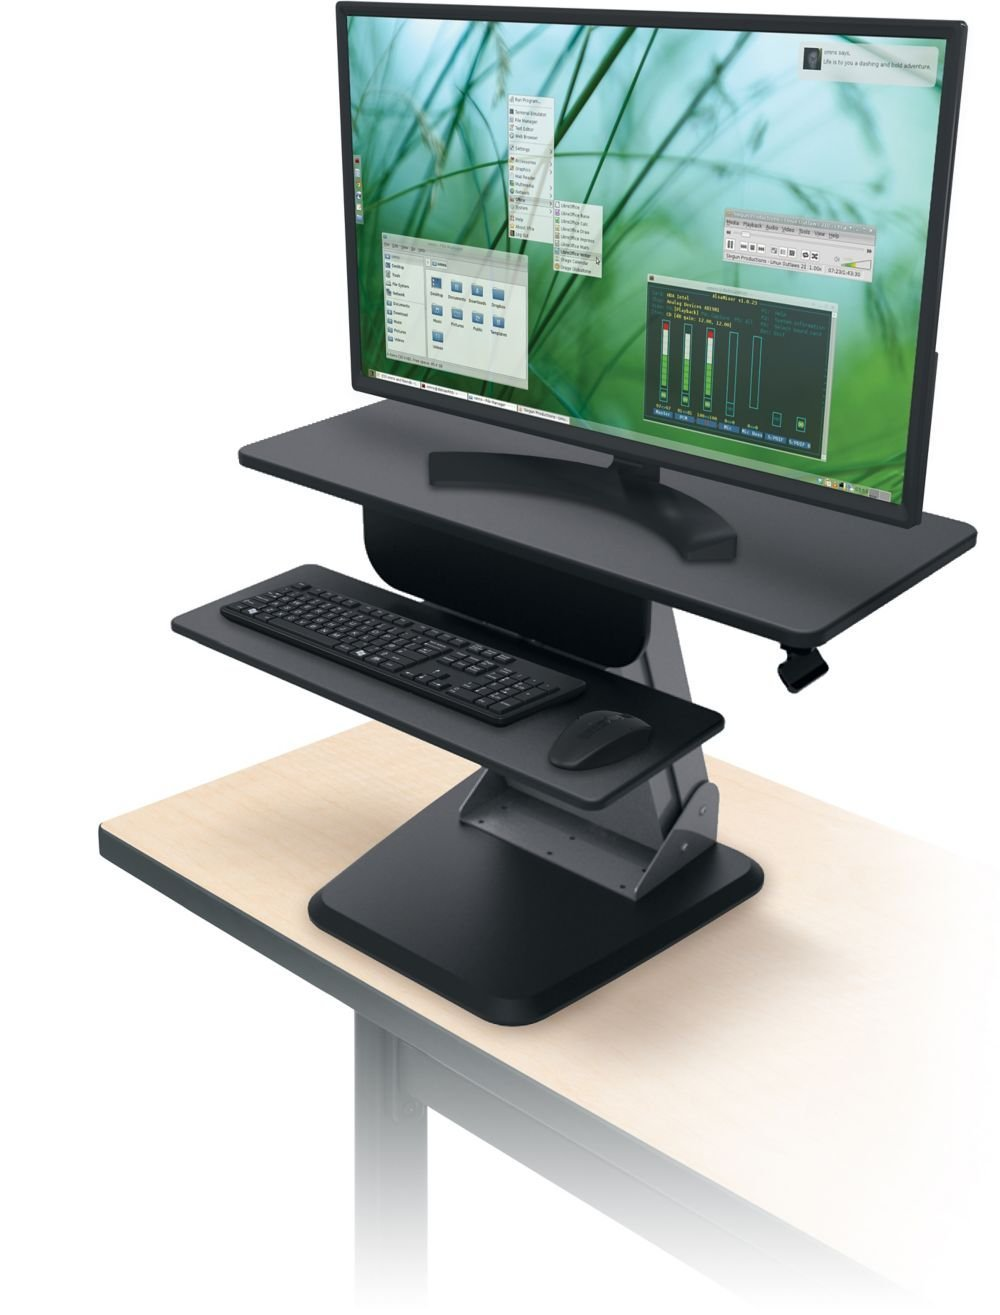 "Black Adjustable Height Desktop Station Dimensions: 35.5""W x 23""D x 36.7""H Weight: 60 Lbs Wide Enough for Large & Dual Monitors Up to 44 Lbs"